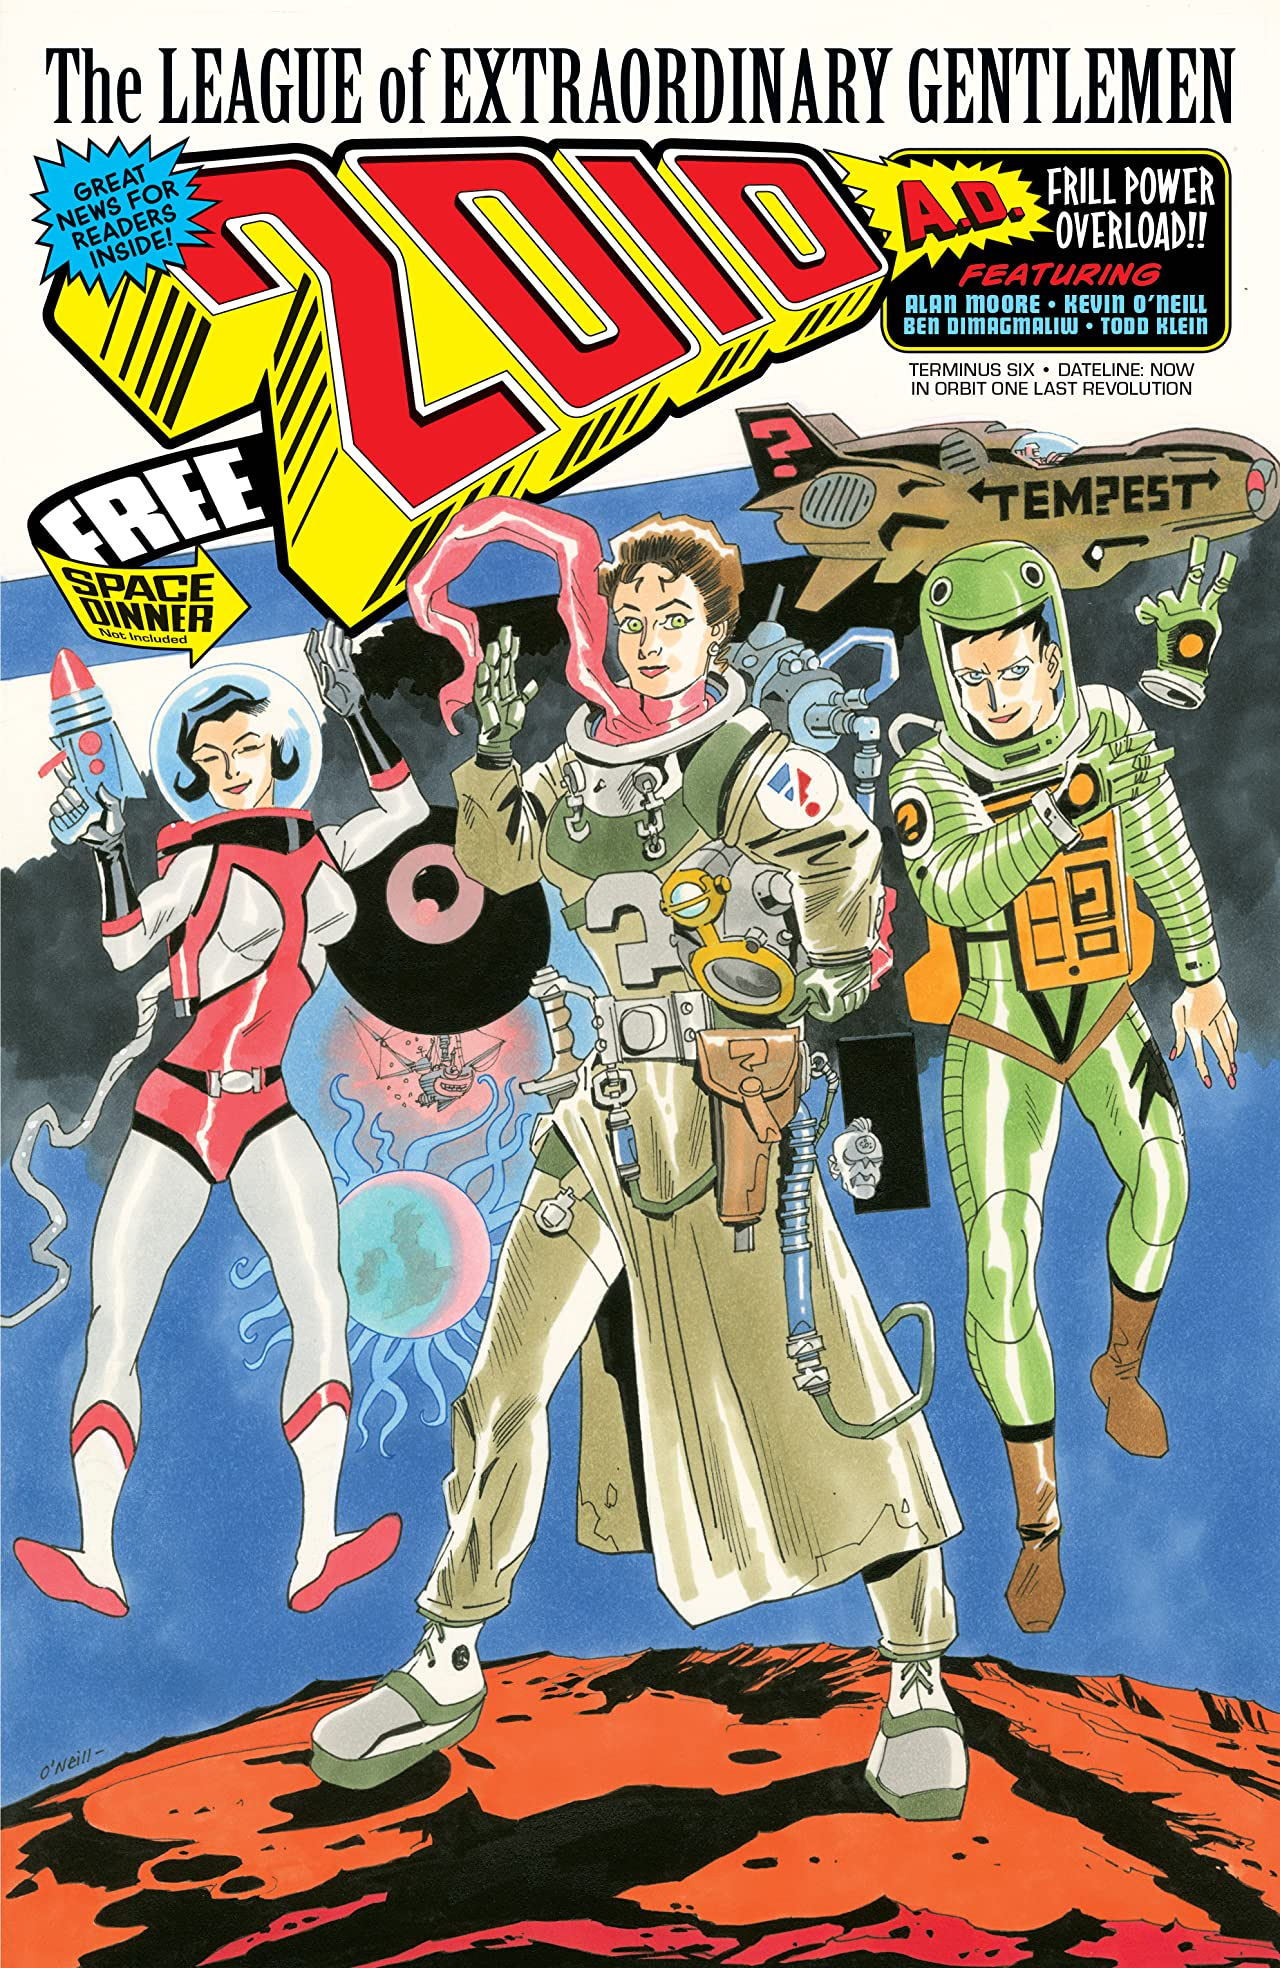 The League of Extraordinary Gentlemen: The Tempest #6 (of 6)